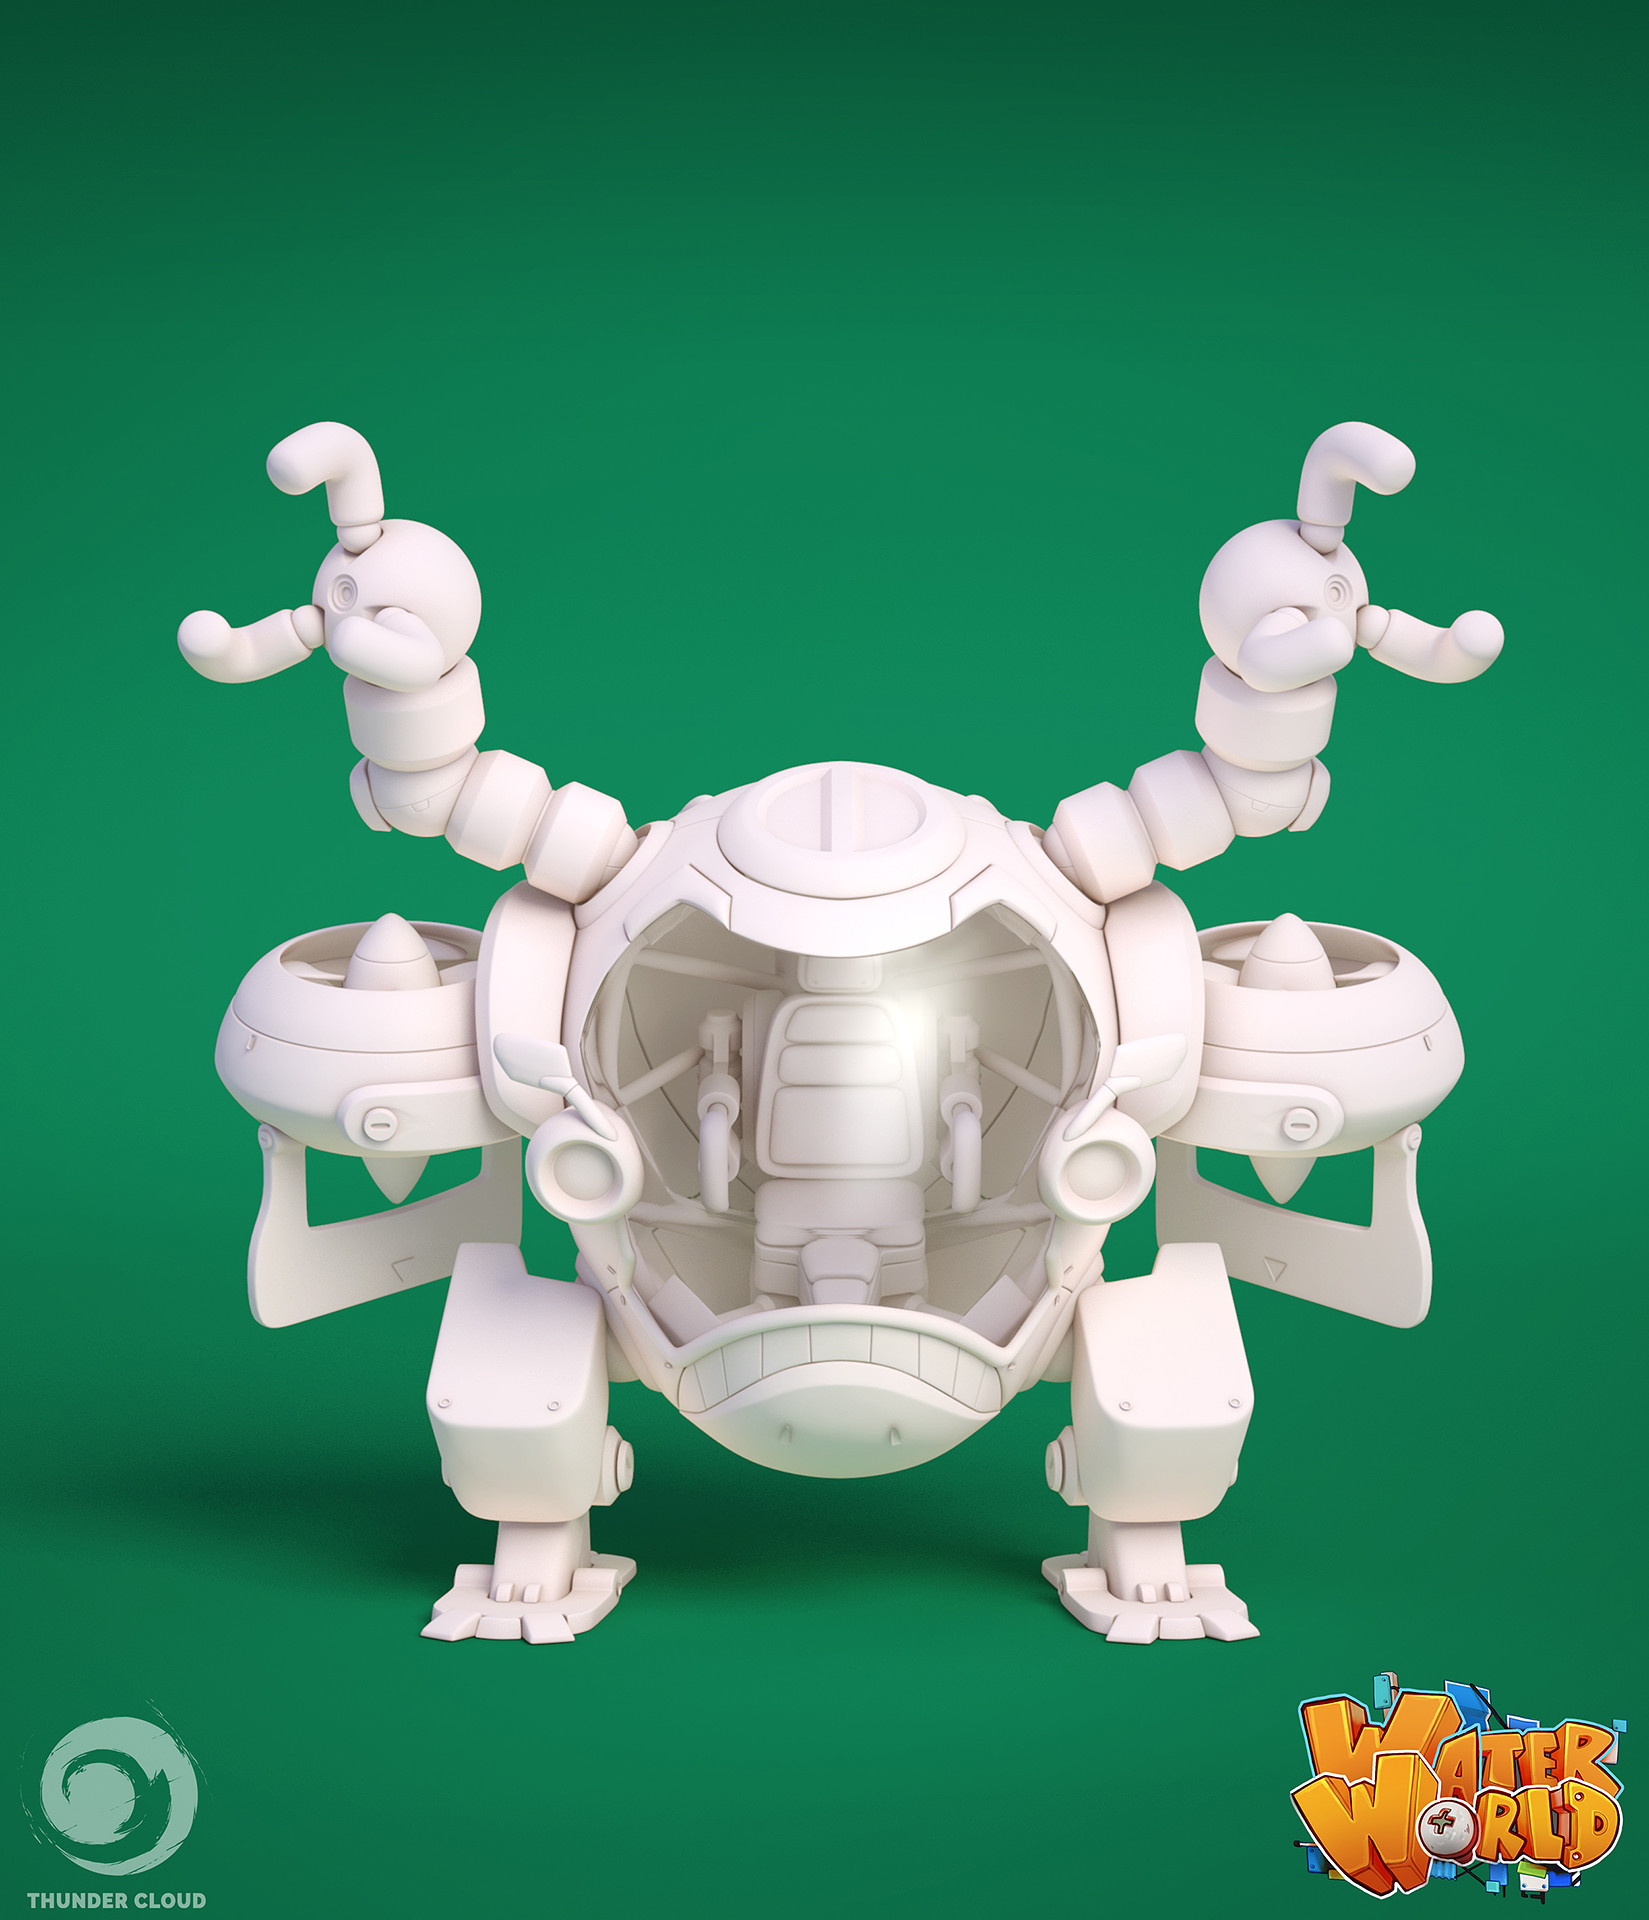 Thunder cloud barmmech hipoly supportimage directfront min